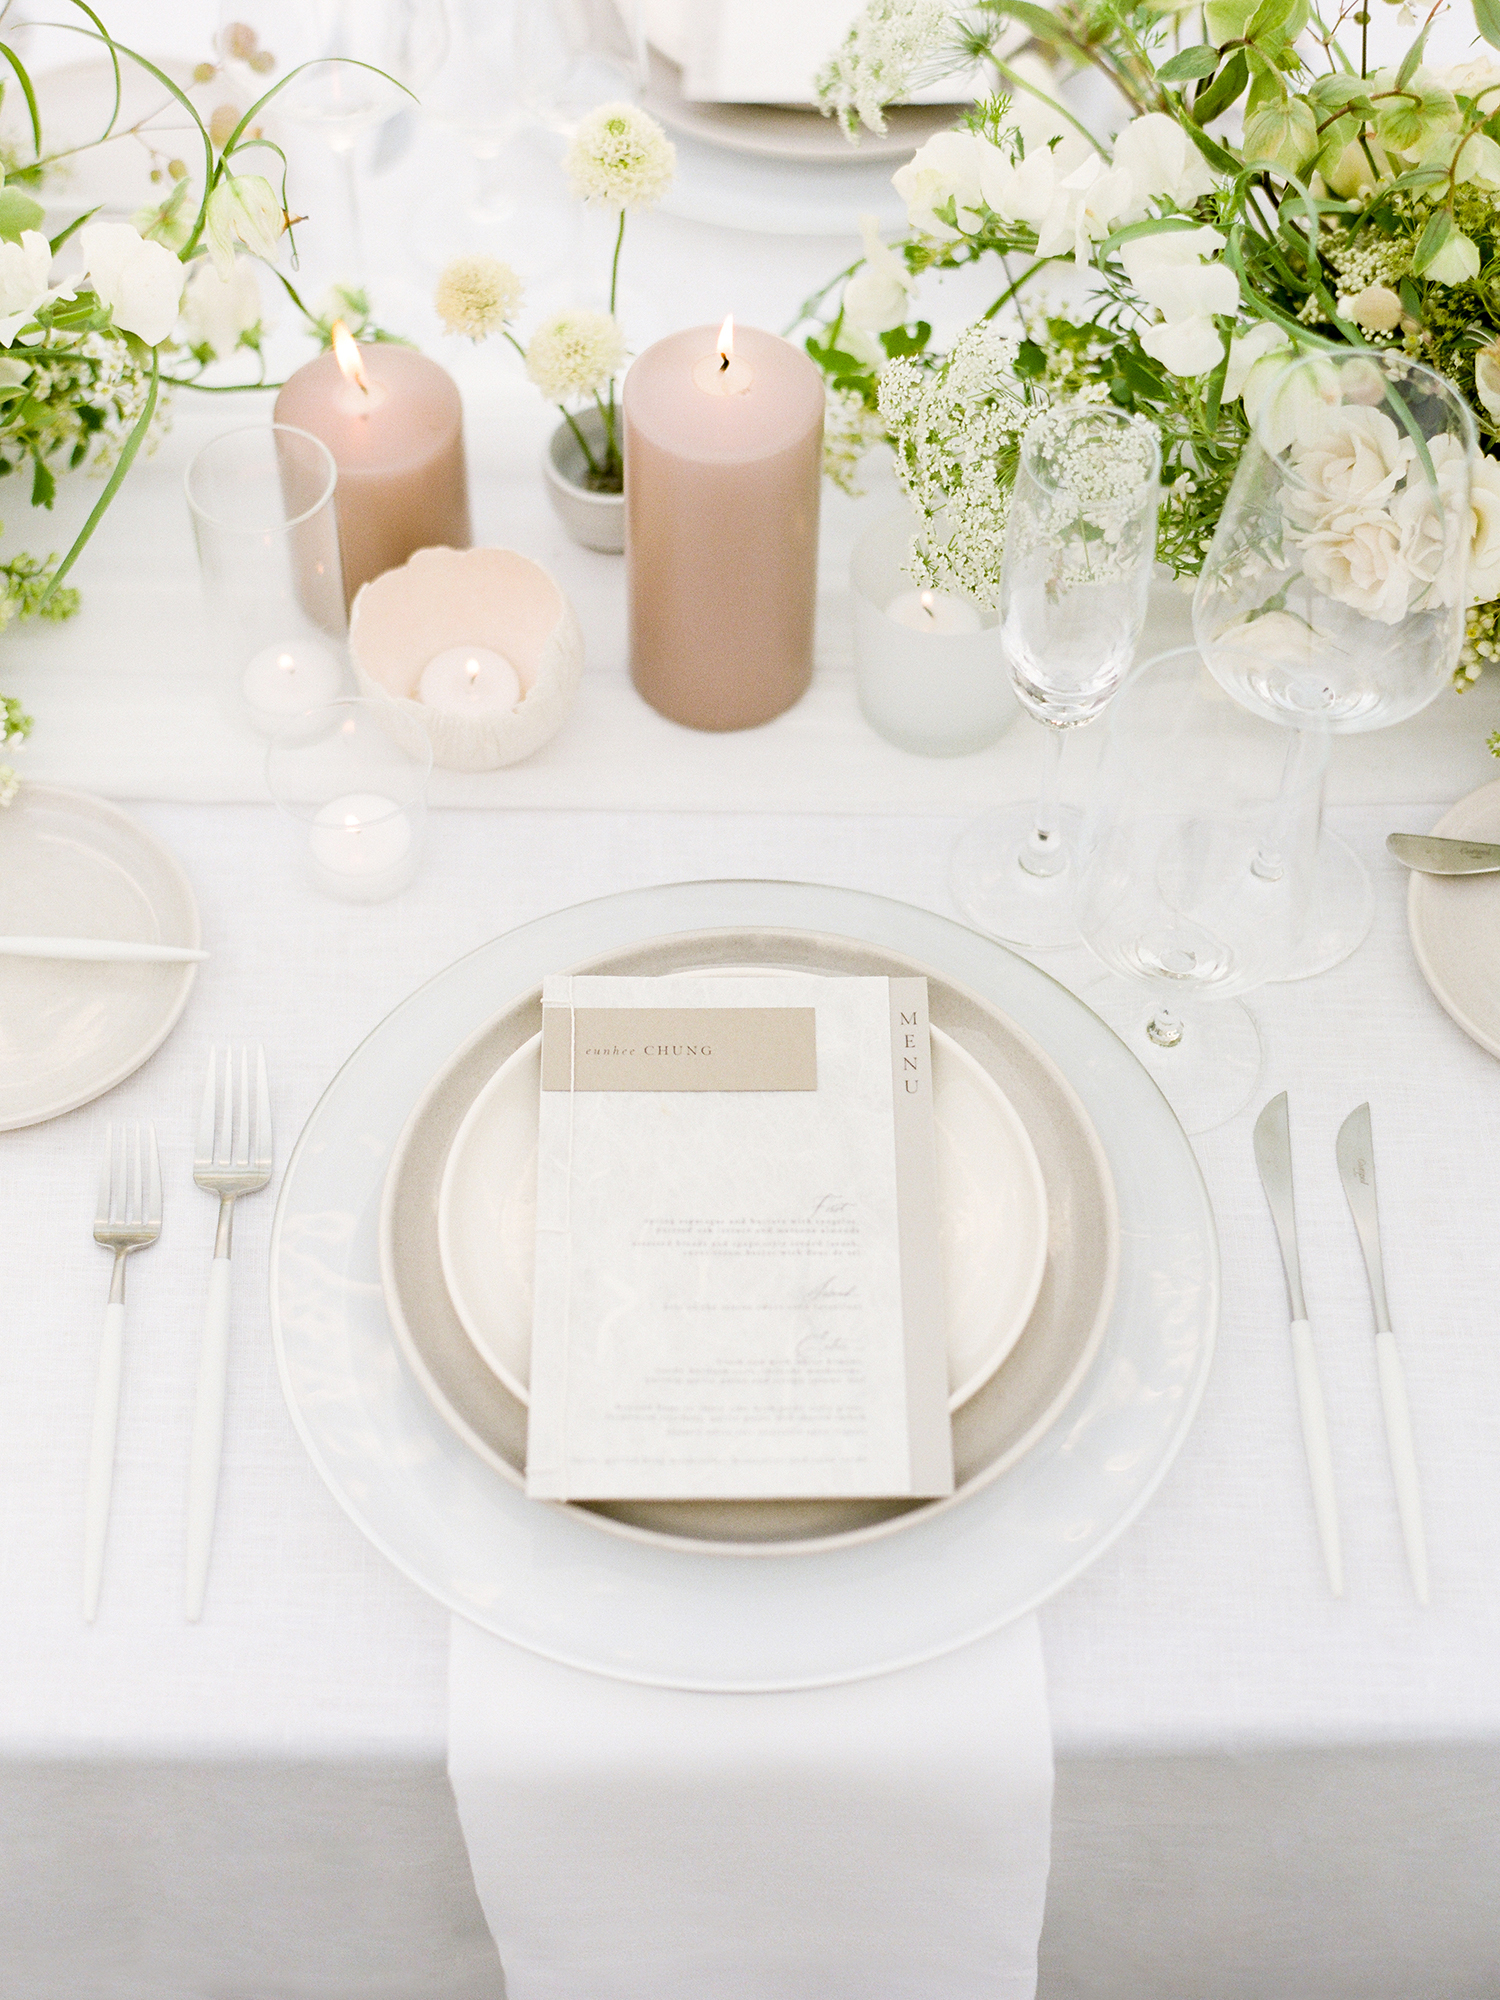 grace ceron wedding place setting and candles